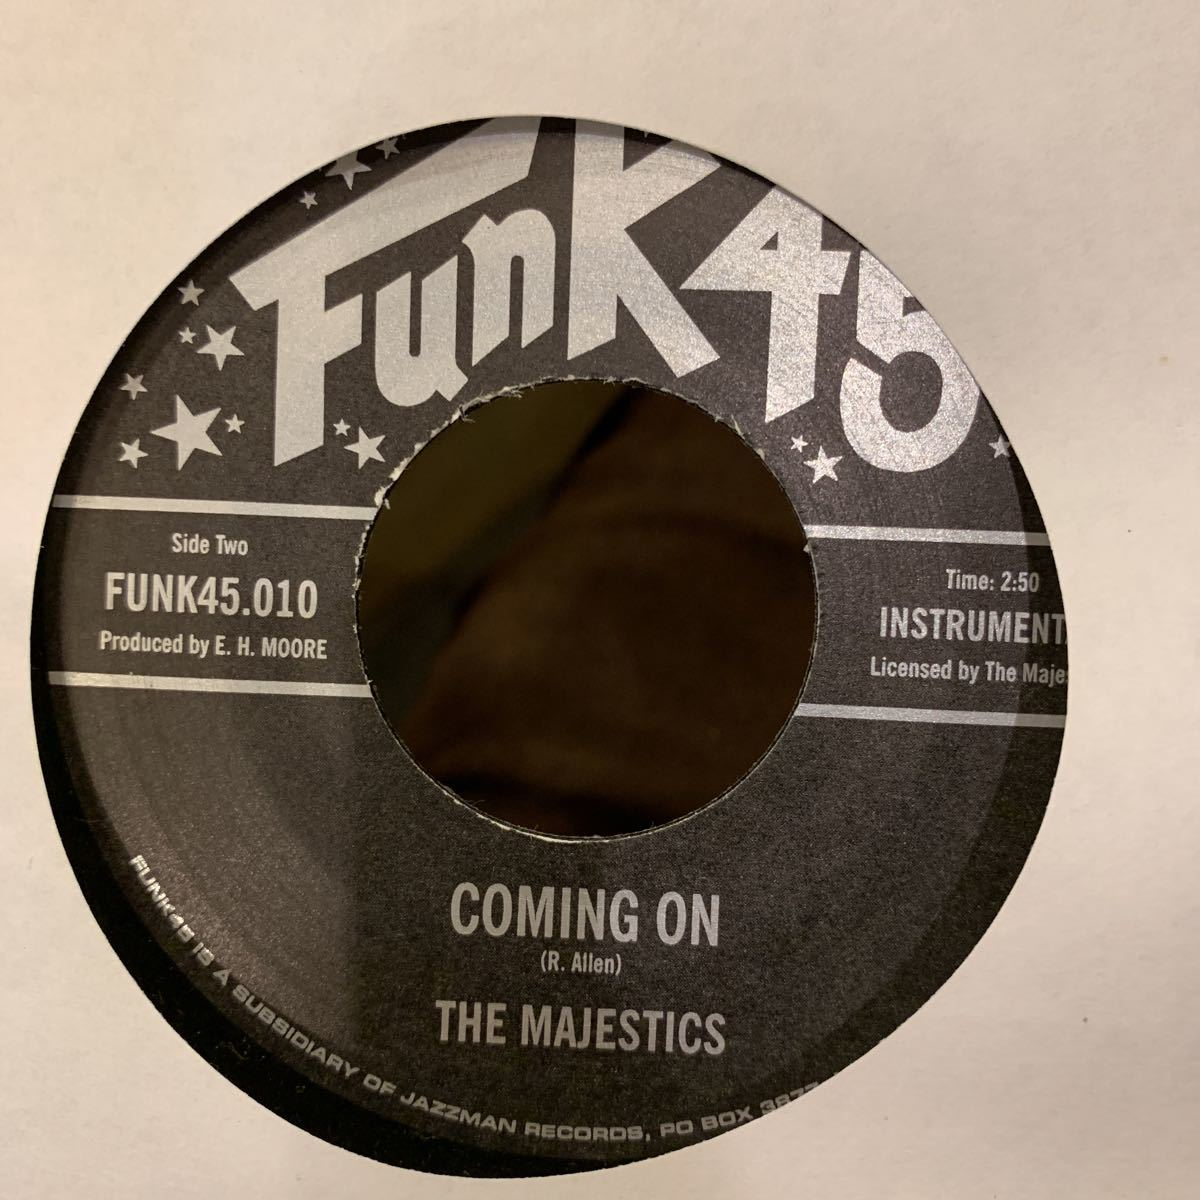 The Majestics - Funky Chick / Coming On 中古レコード_画像2